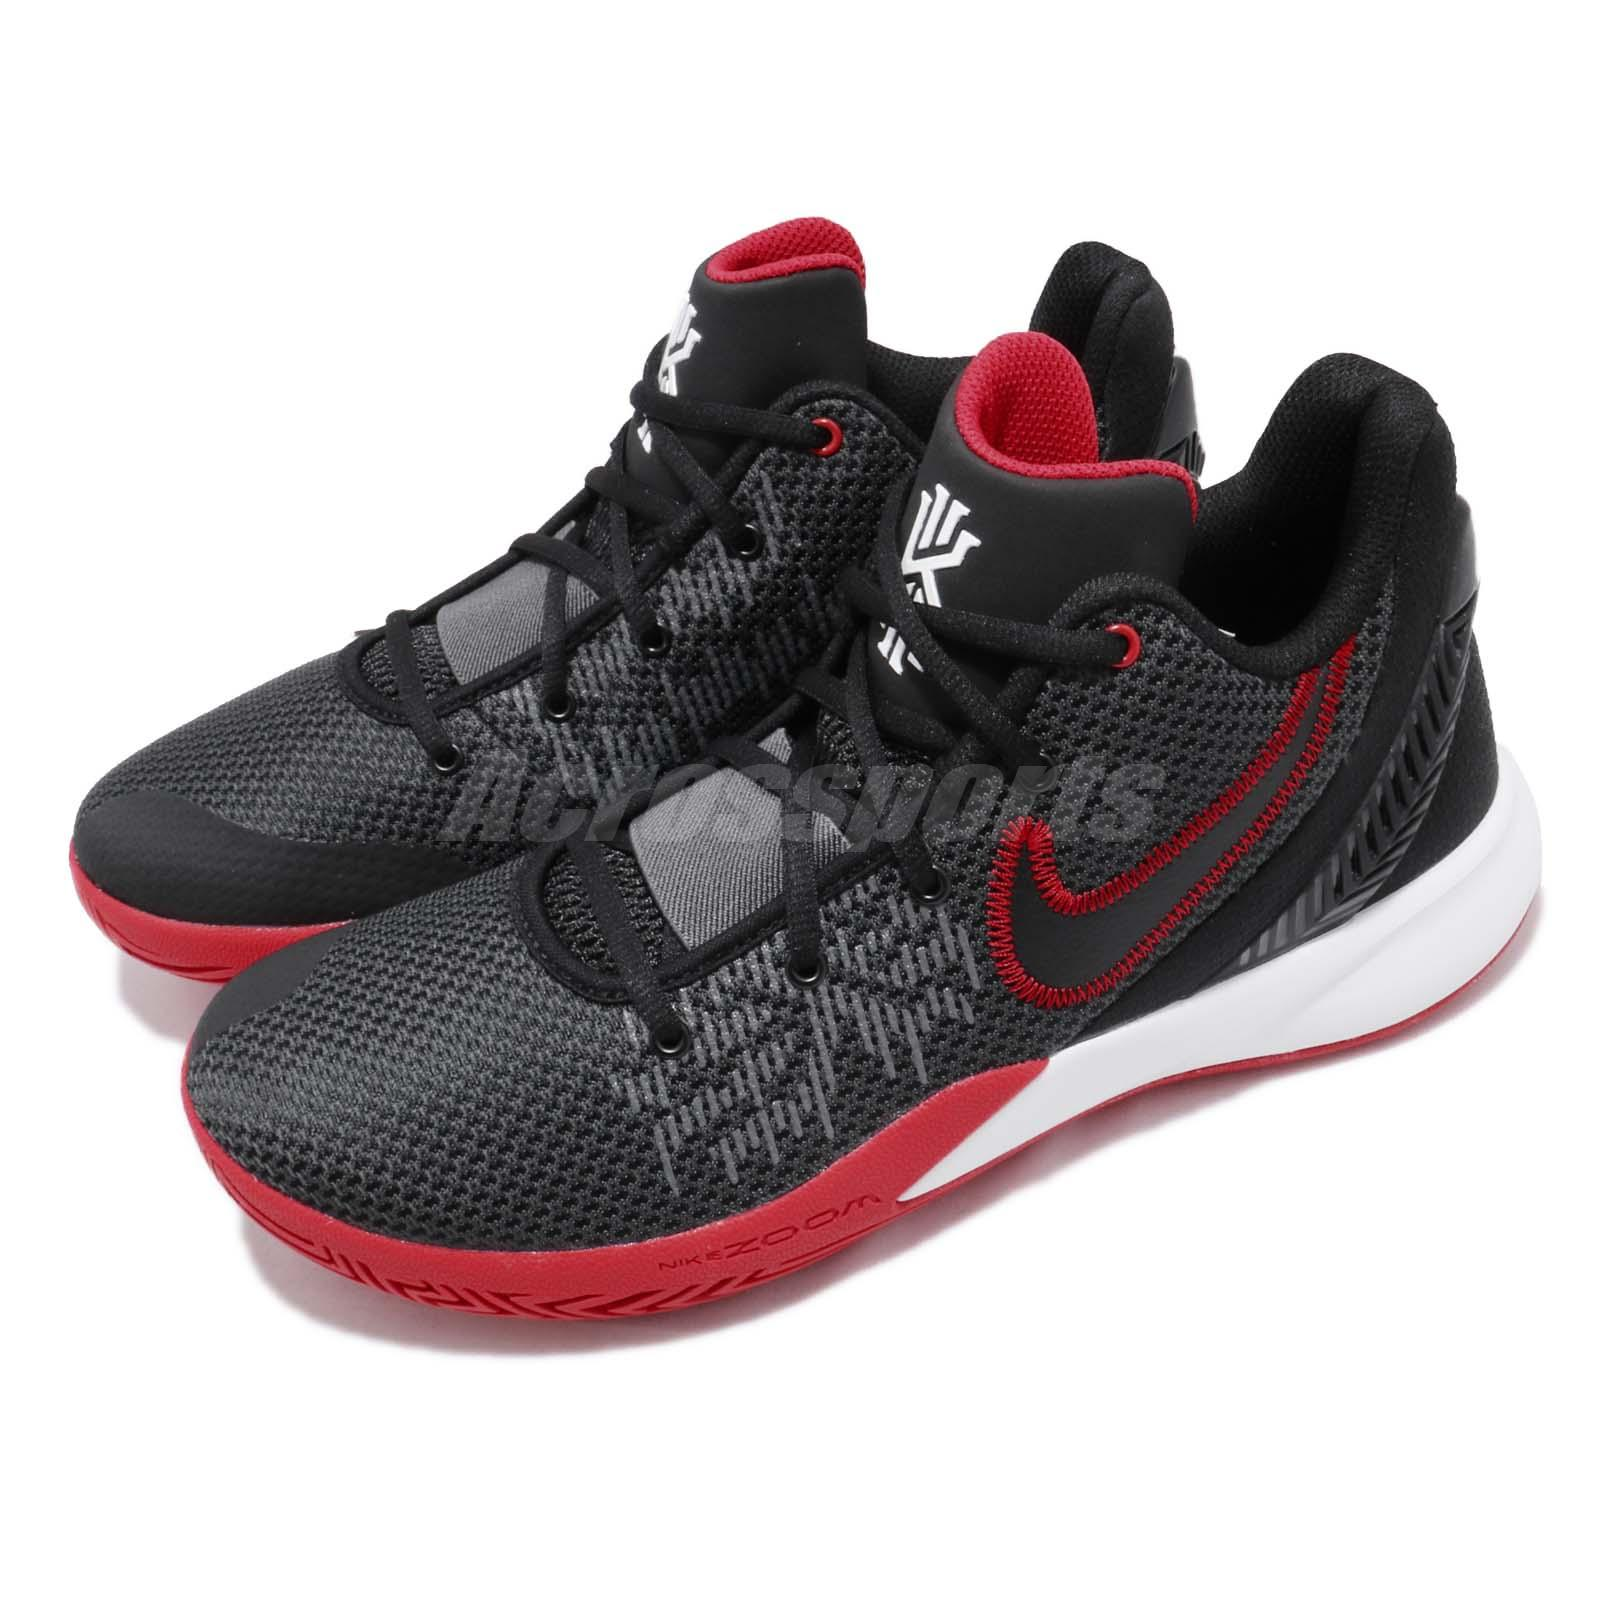 sports shoes fc54f ea325 Details about Nike Kyrie Flytrap II EP Irving 2 Black Red Bred Mens Basketball  Shoe AO4438-016